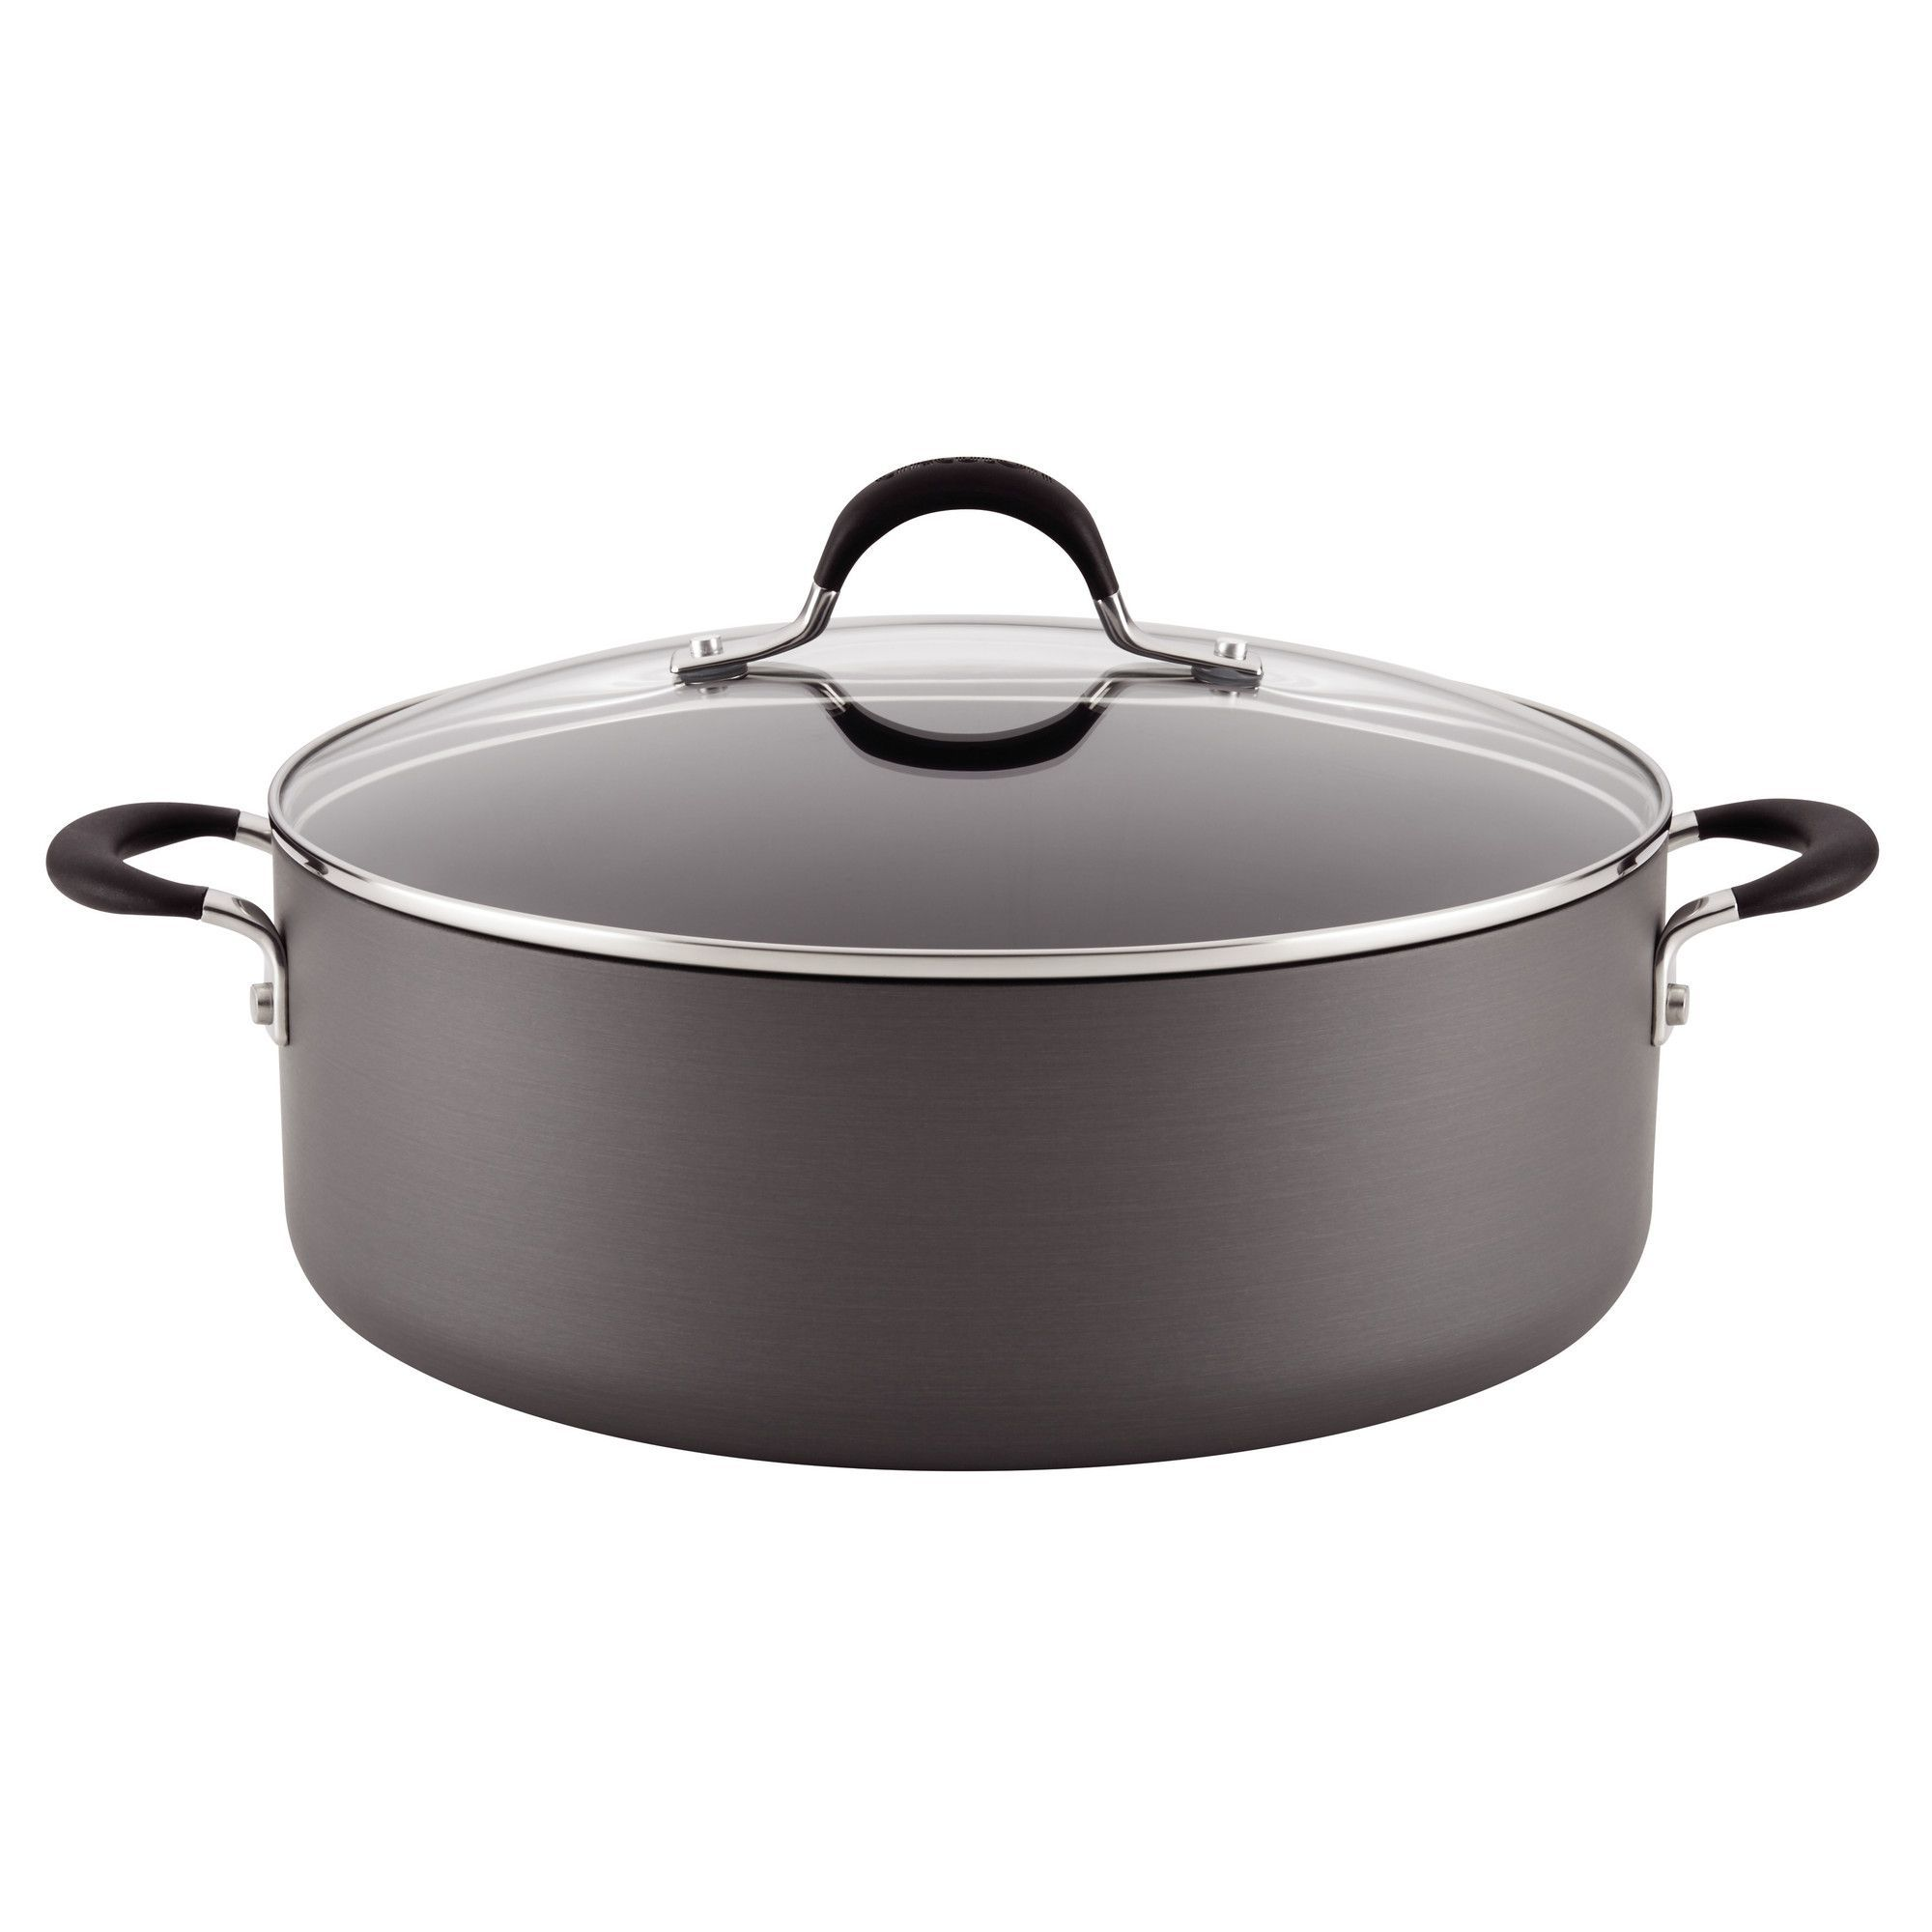 Momentum 7 5 Qt Stockpot With Lid Hard Anodized